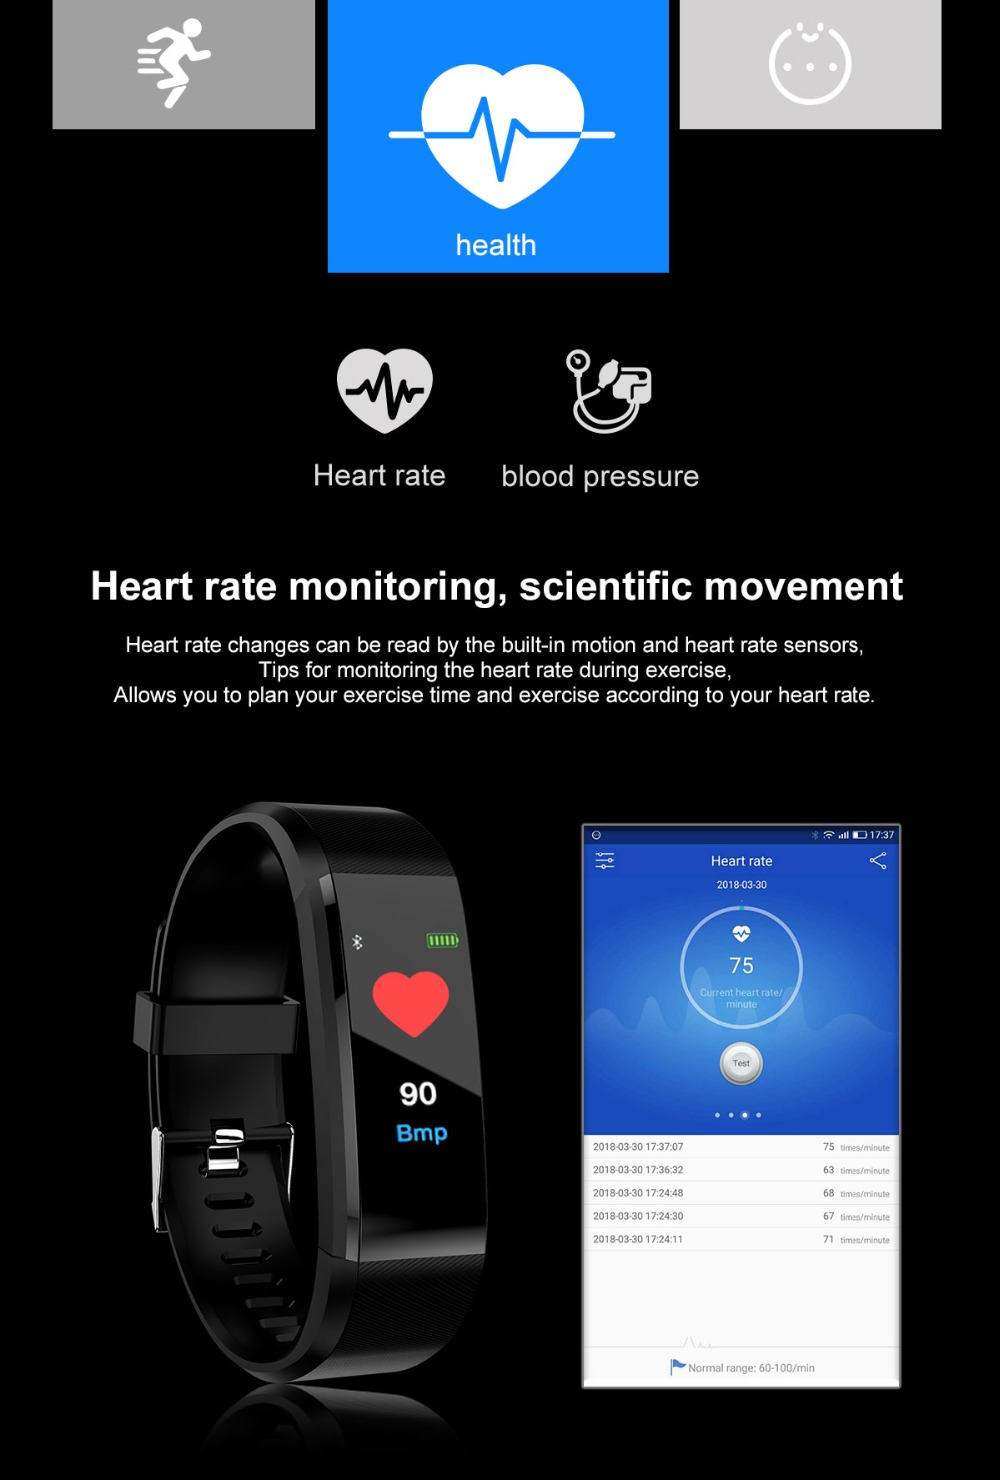 HTB1rnULL3HqK1RjSZJnq6zNLpXai 115Plus Bracelet Heart Rate Blood Pressure Smart Band Fitness Tracker Smartband Bluetooth Wristband for fitbits Smart Watch